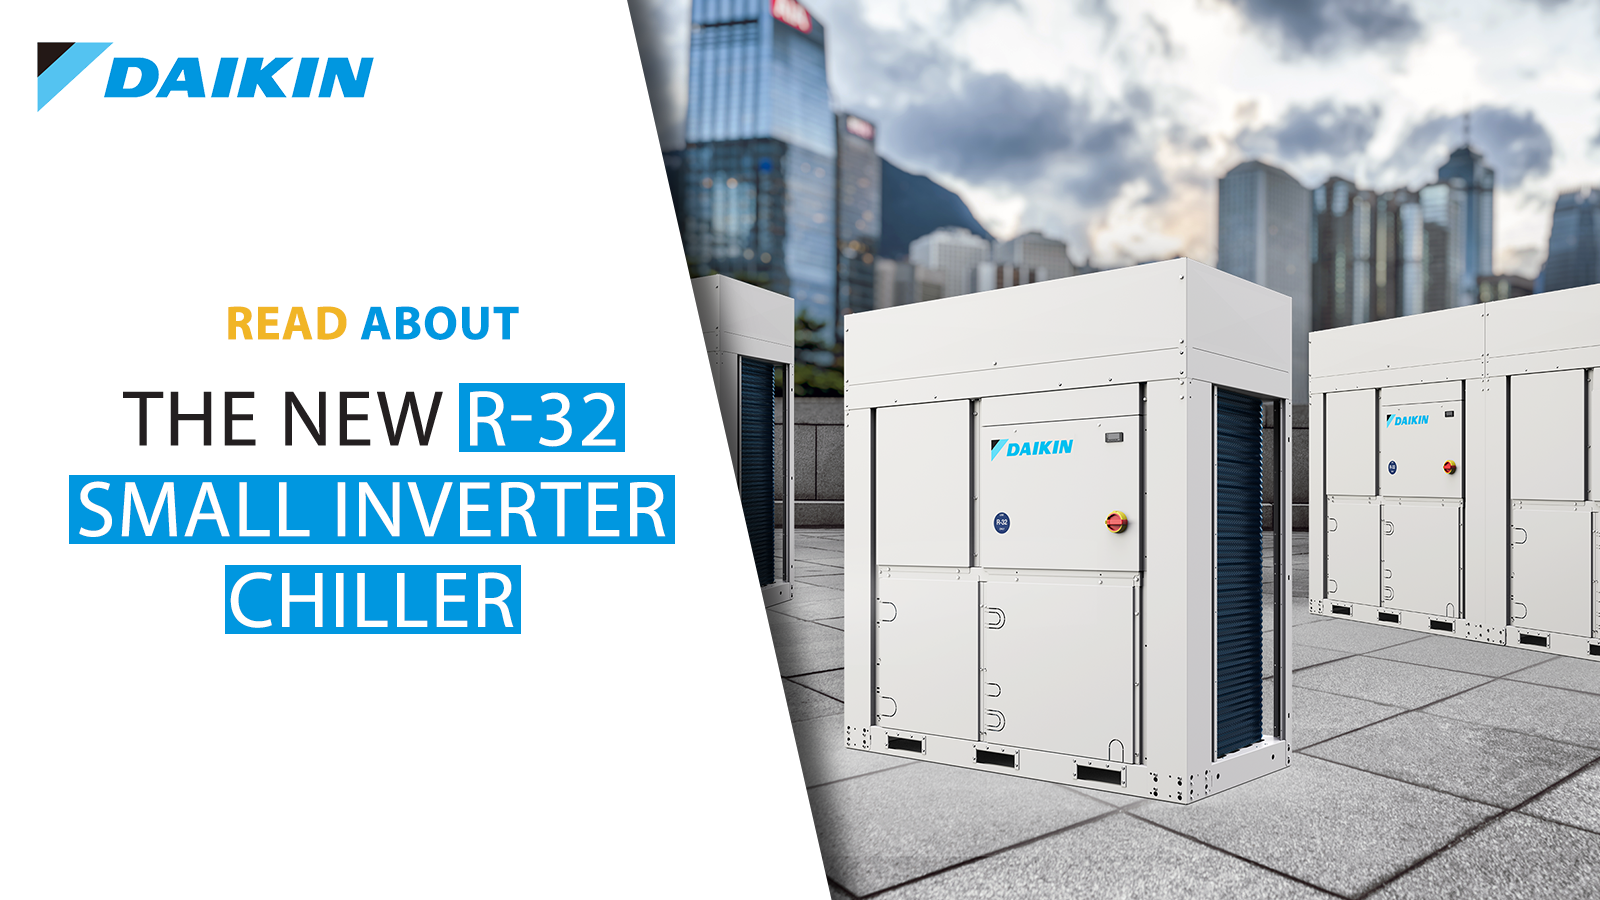 Introducing the R-32 Small Inverter Chiller